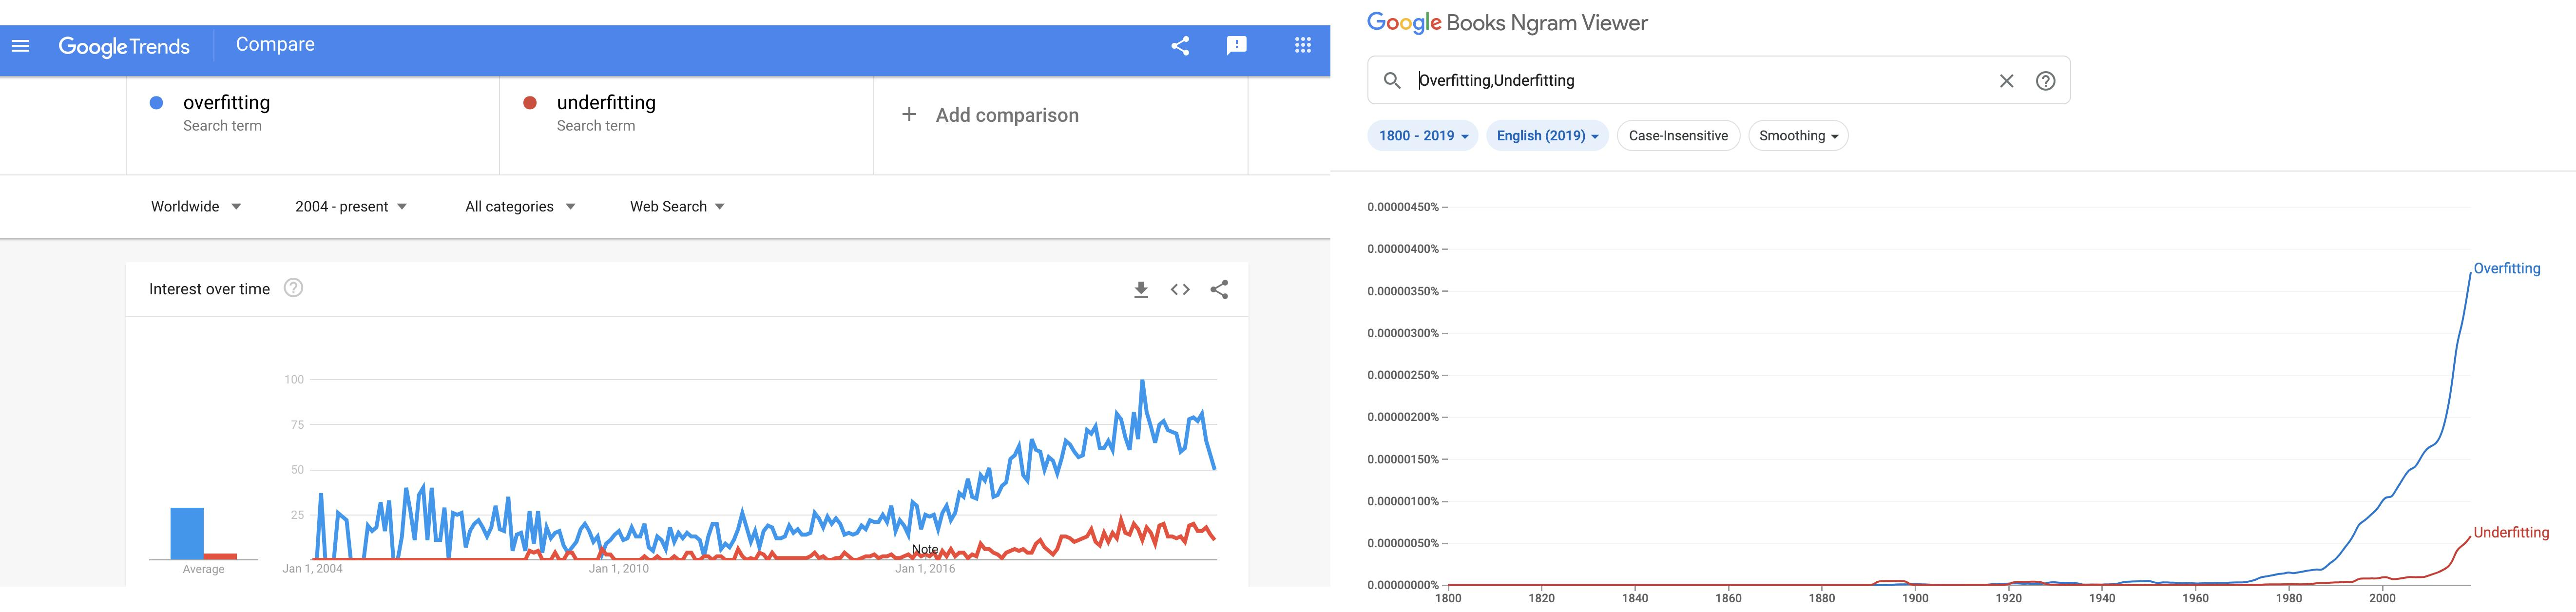 overfitting vs underfitting search trends and ngram viewer